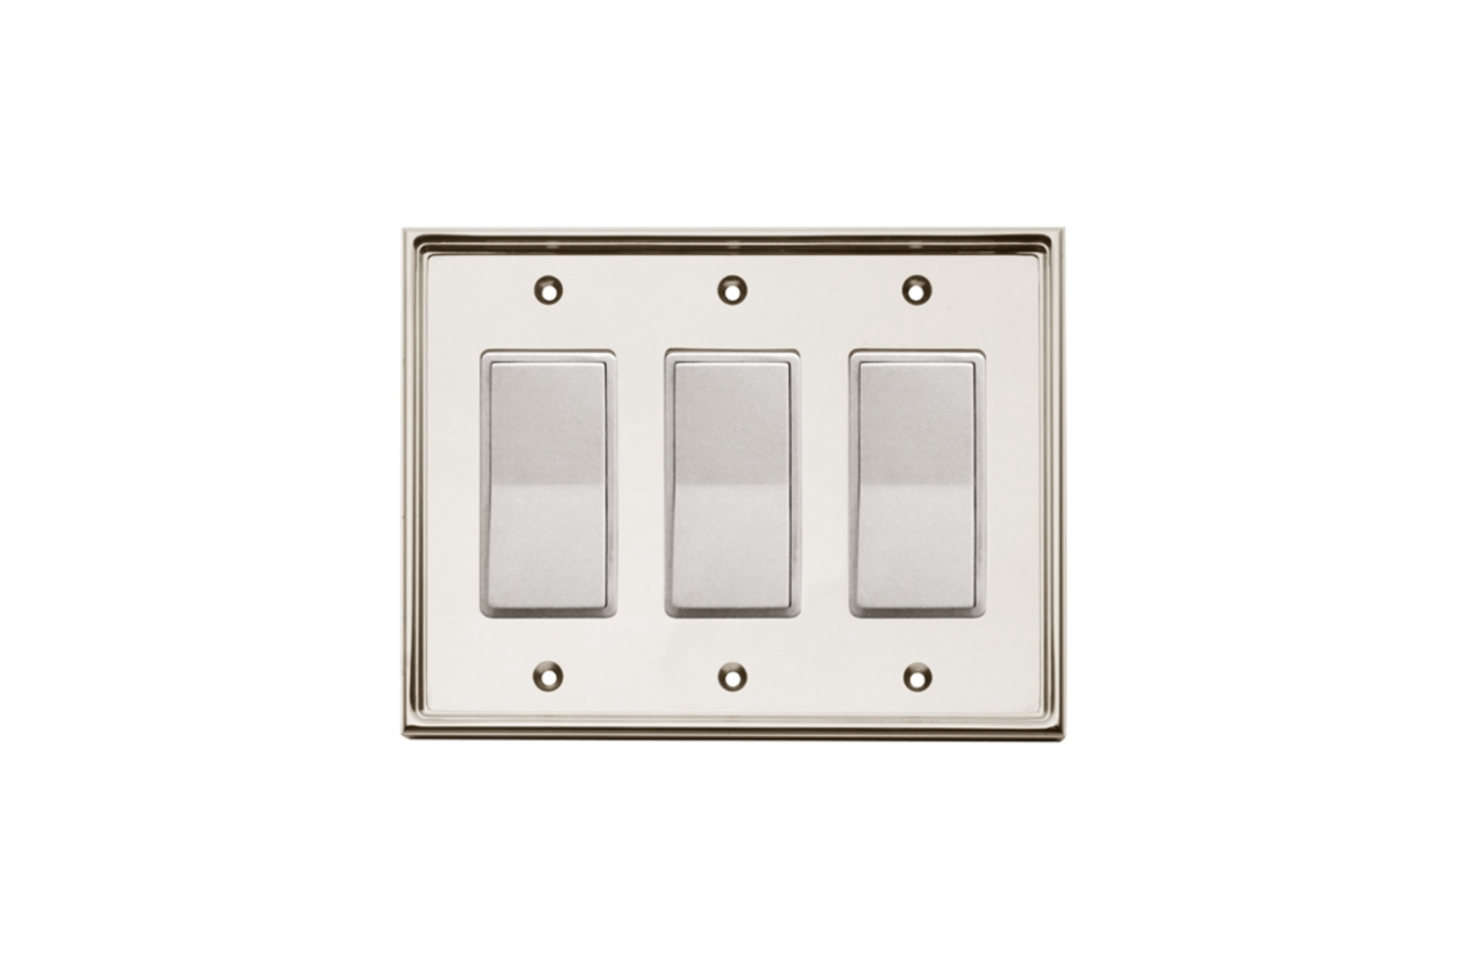 The Nanz No. 98LT3 Wall Plates featuring stepped molding around the edge is available in all Nanz finishes; contact for price and ordering information.